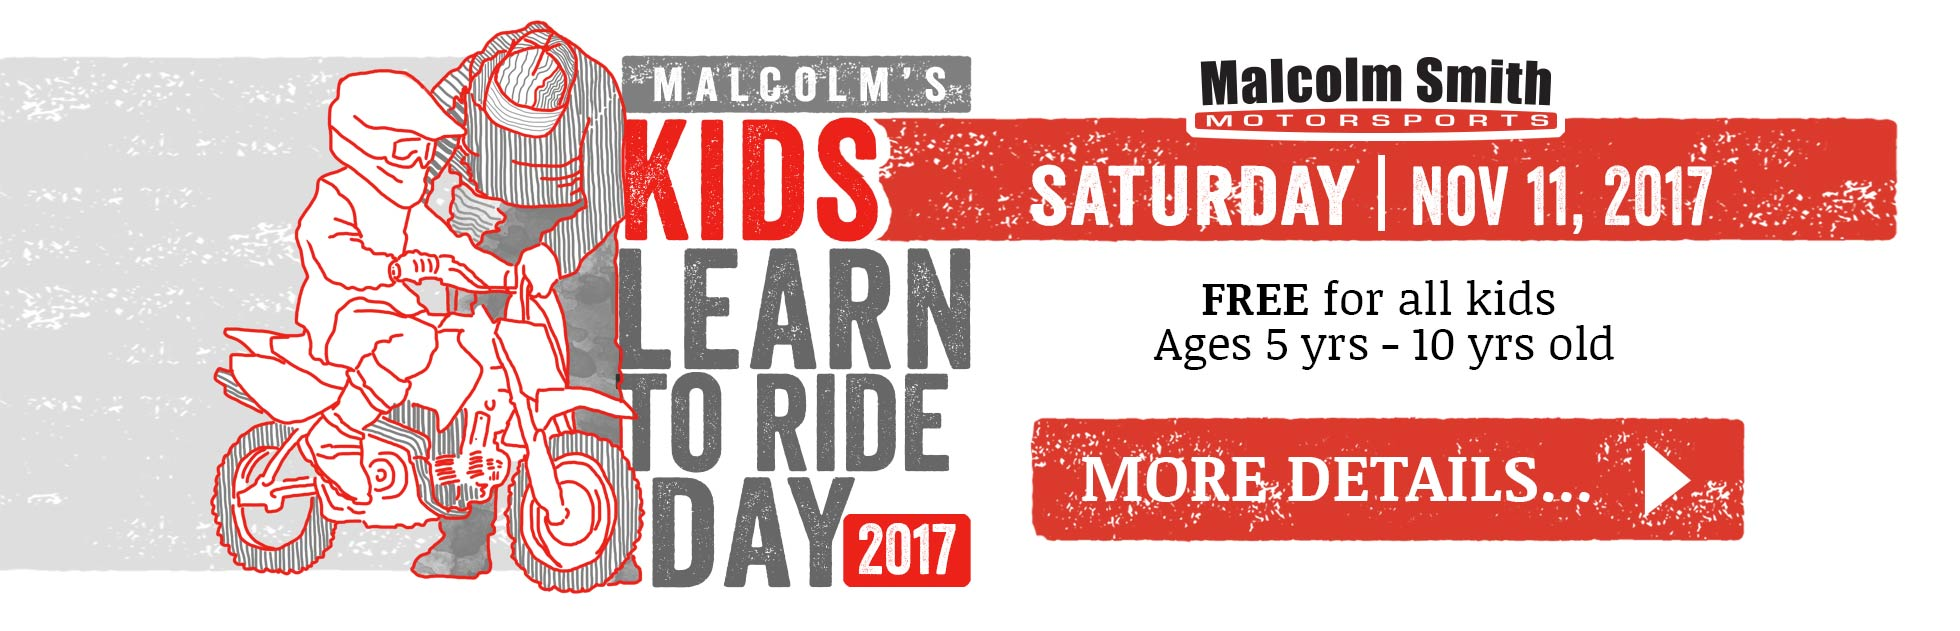 Free Annual event to teach kids how to ride motorycles